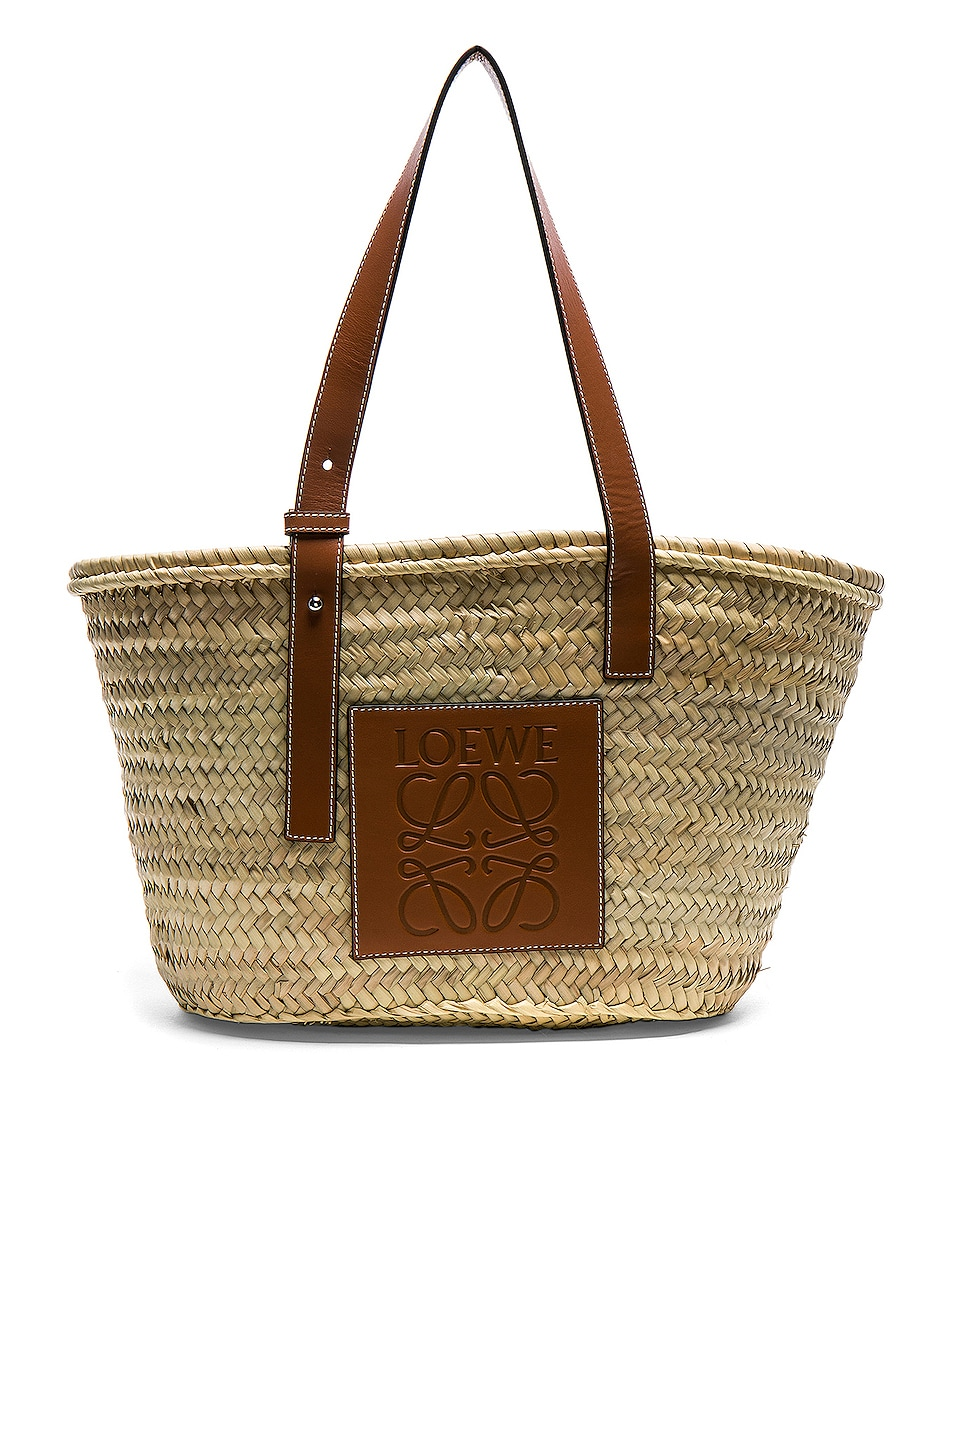 Image 1 of Loewe Basket Bag in Natural & Tan